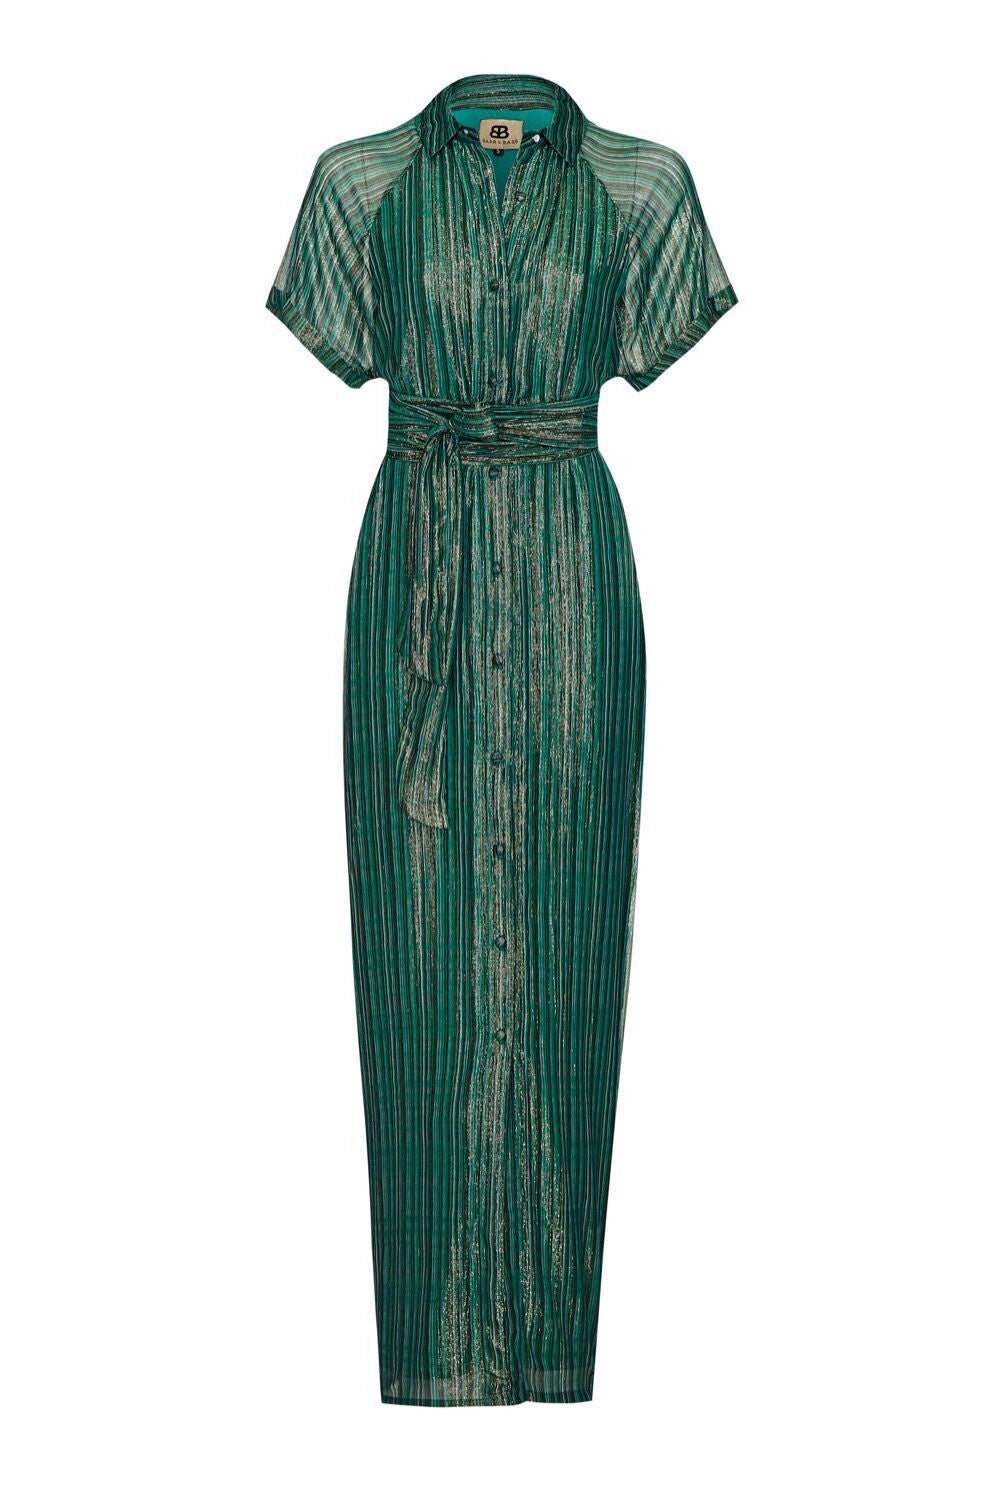 Baar and Bass - Green Stripe Lurex Birdie Dress